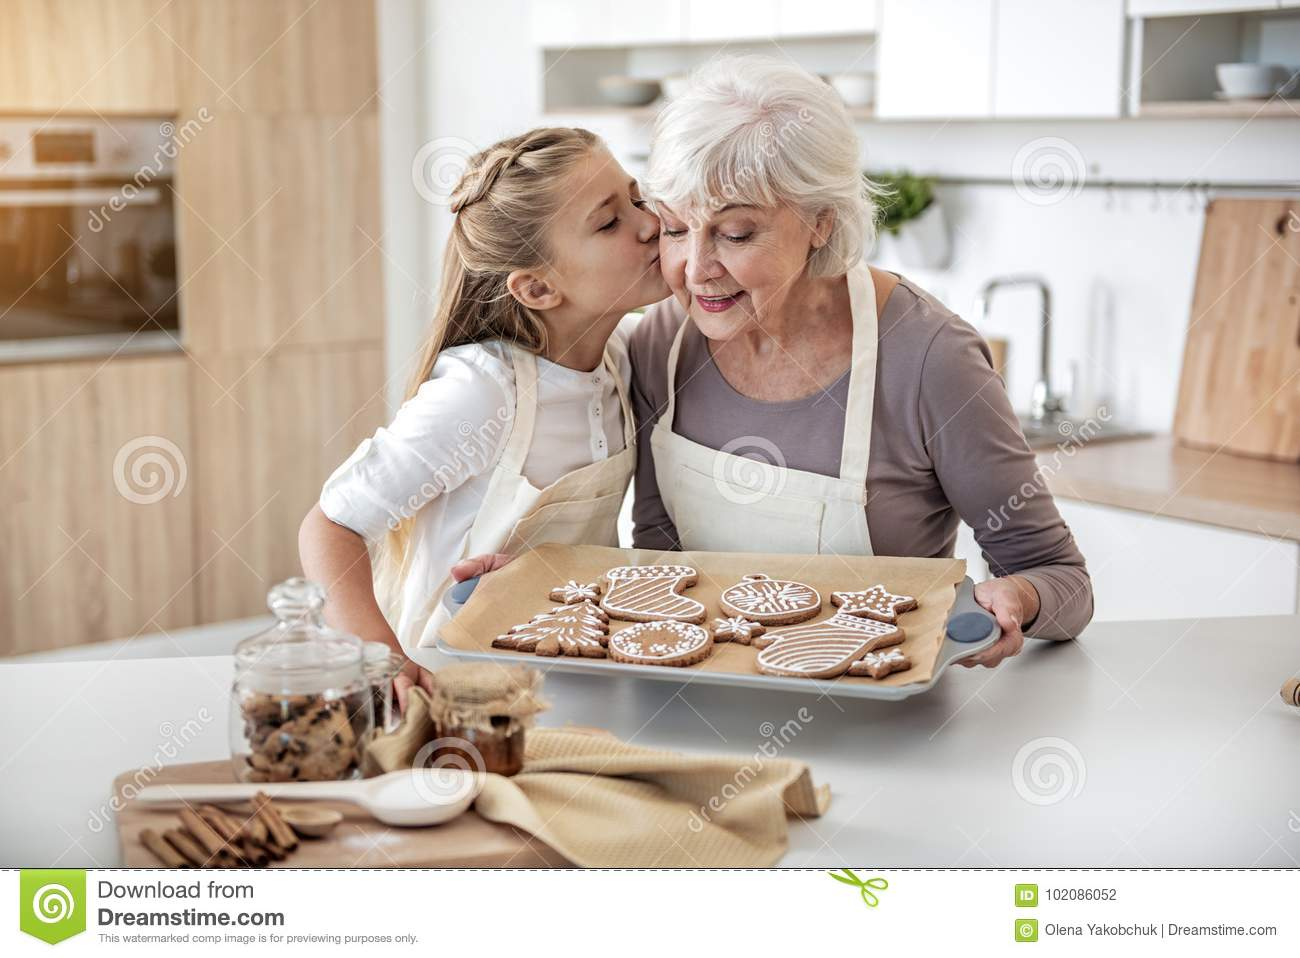 Happy child thanking grandma for sweet pastry